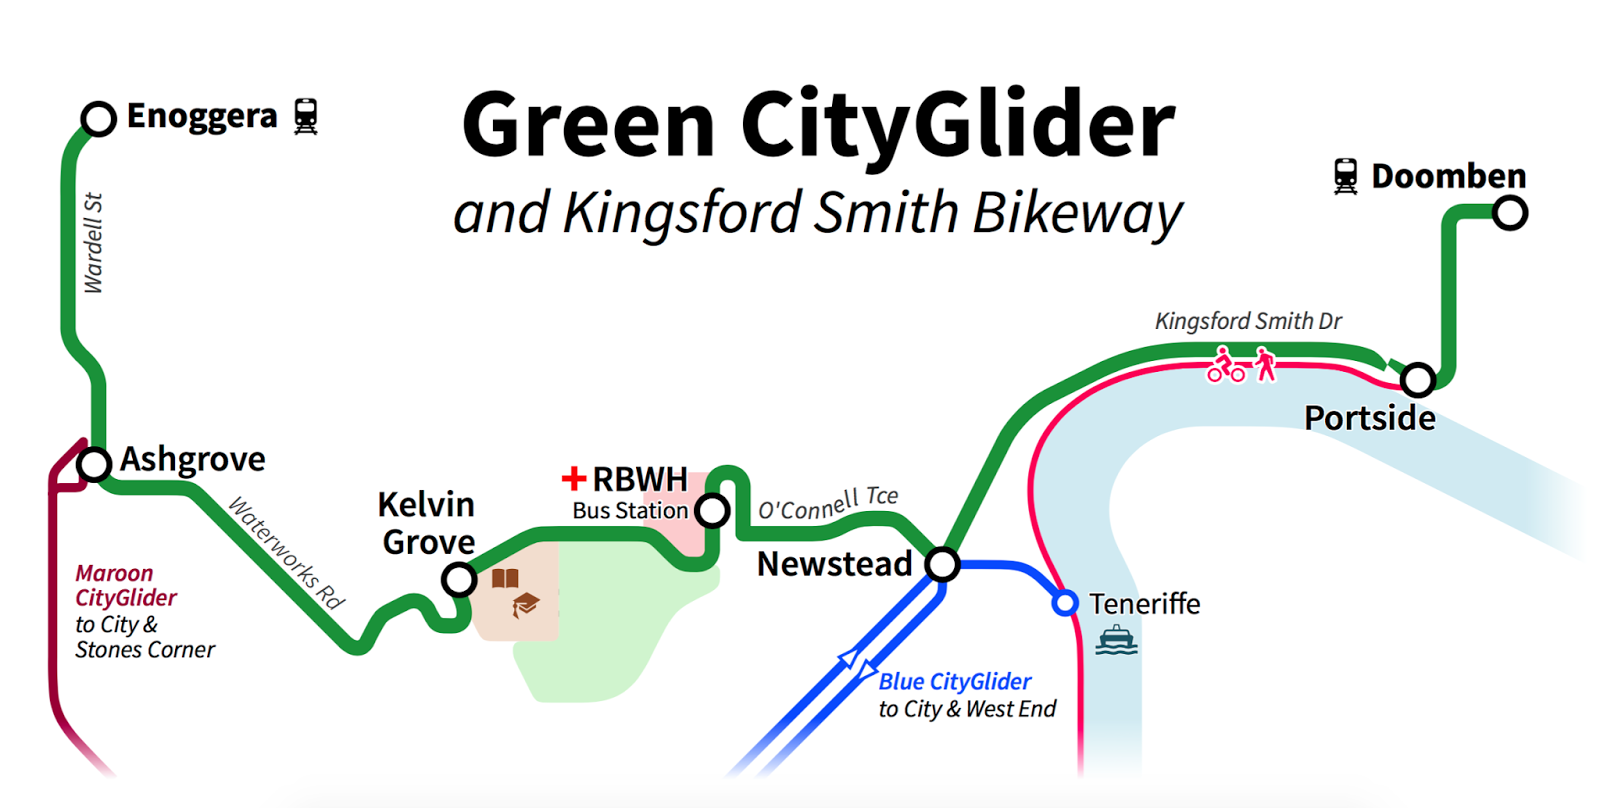 Brizcommuter greenies cityglider so what are the good points of the green cityglider sciox Gallery